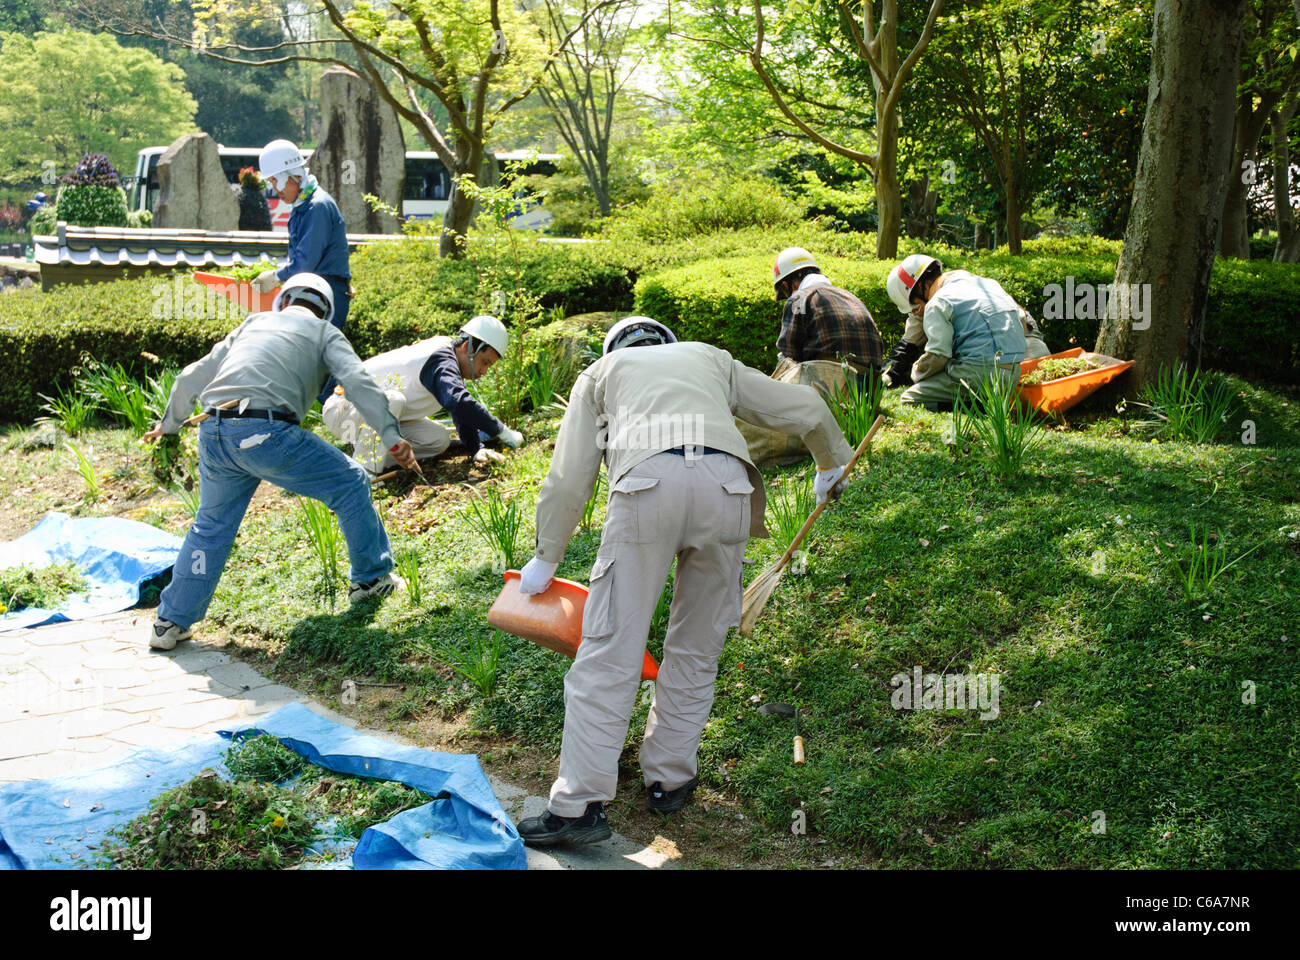 Gardening Group: Japanese Work Team: Gardeners At Work In Japan. Group Of